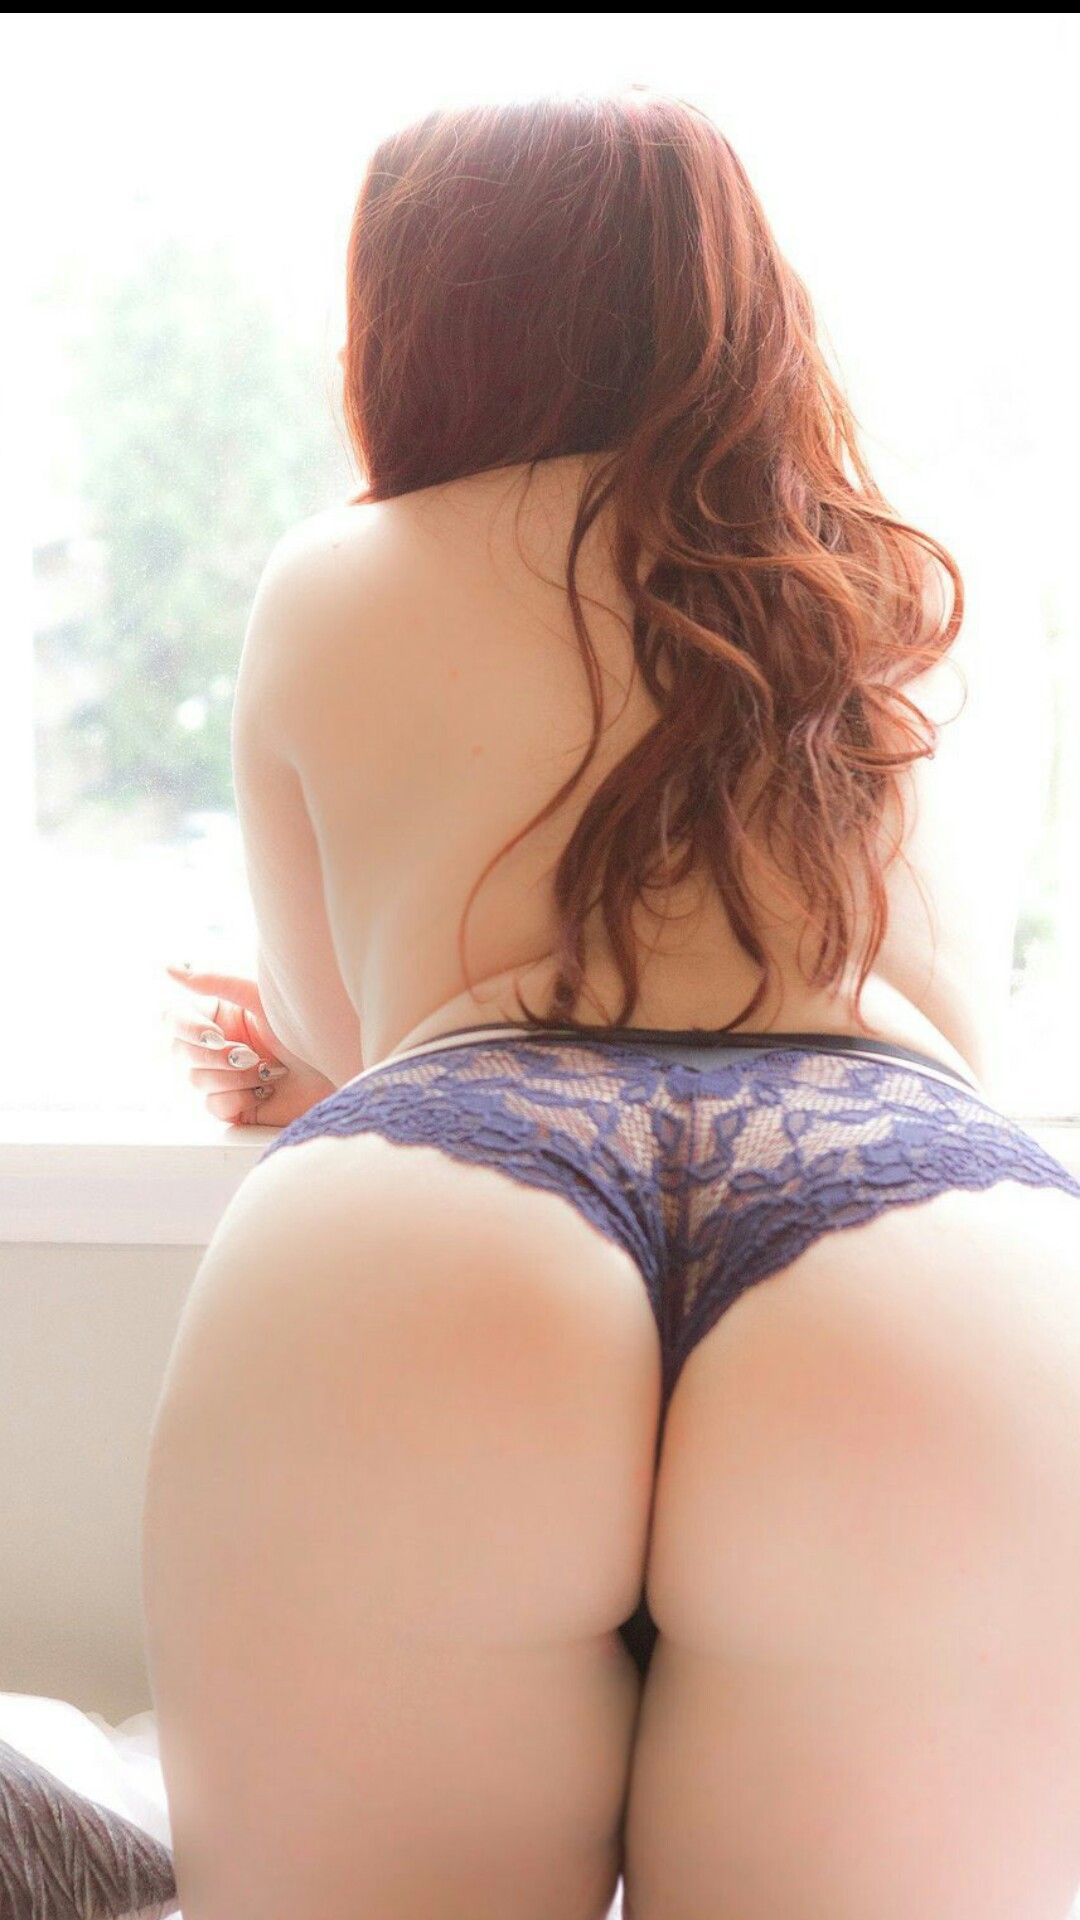 Redhead women in nylon panties